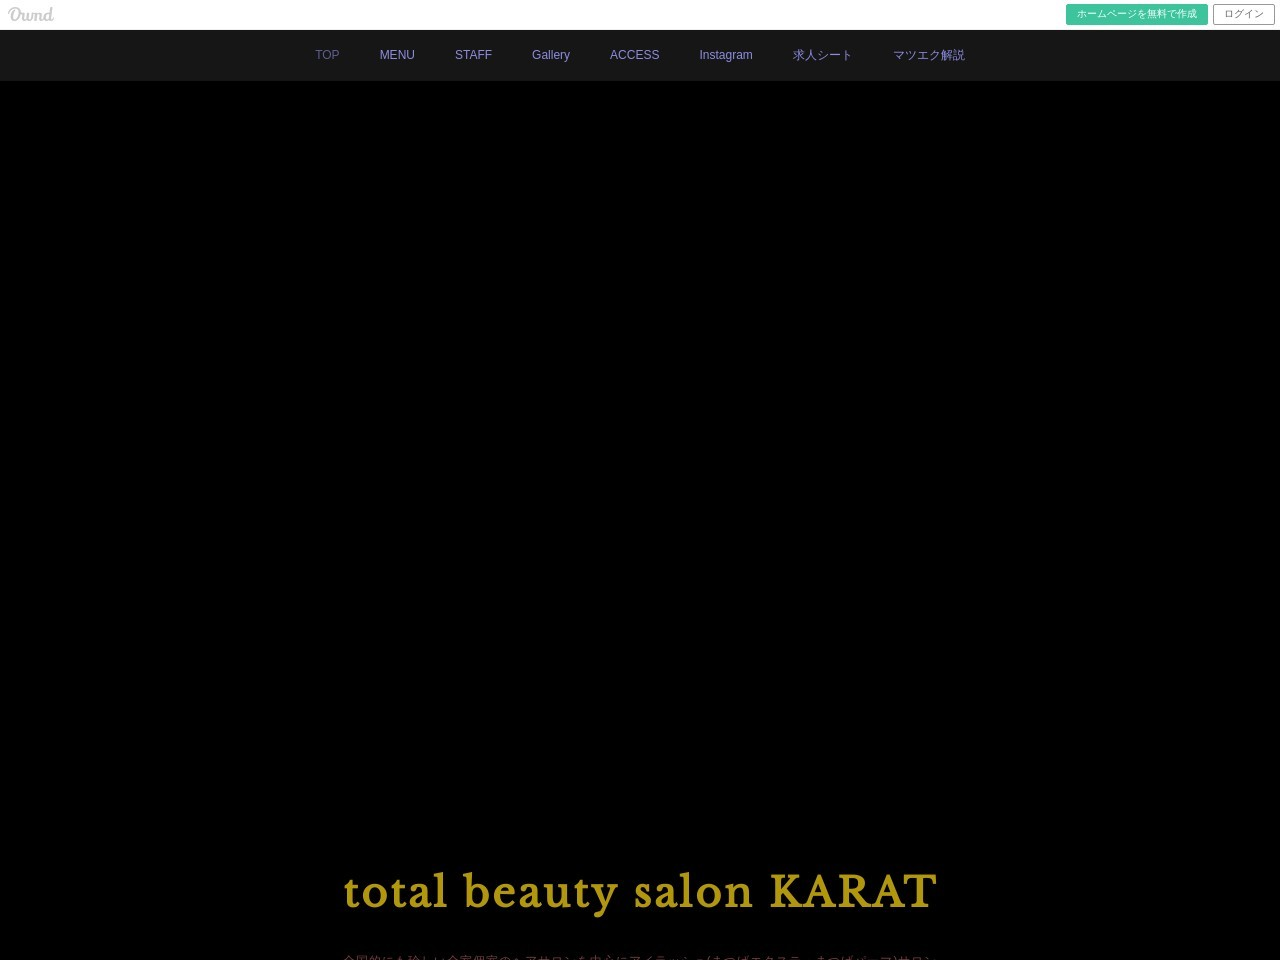 total beauty salon KARAT